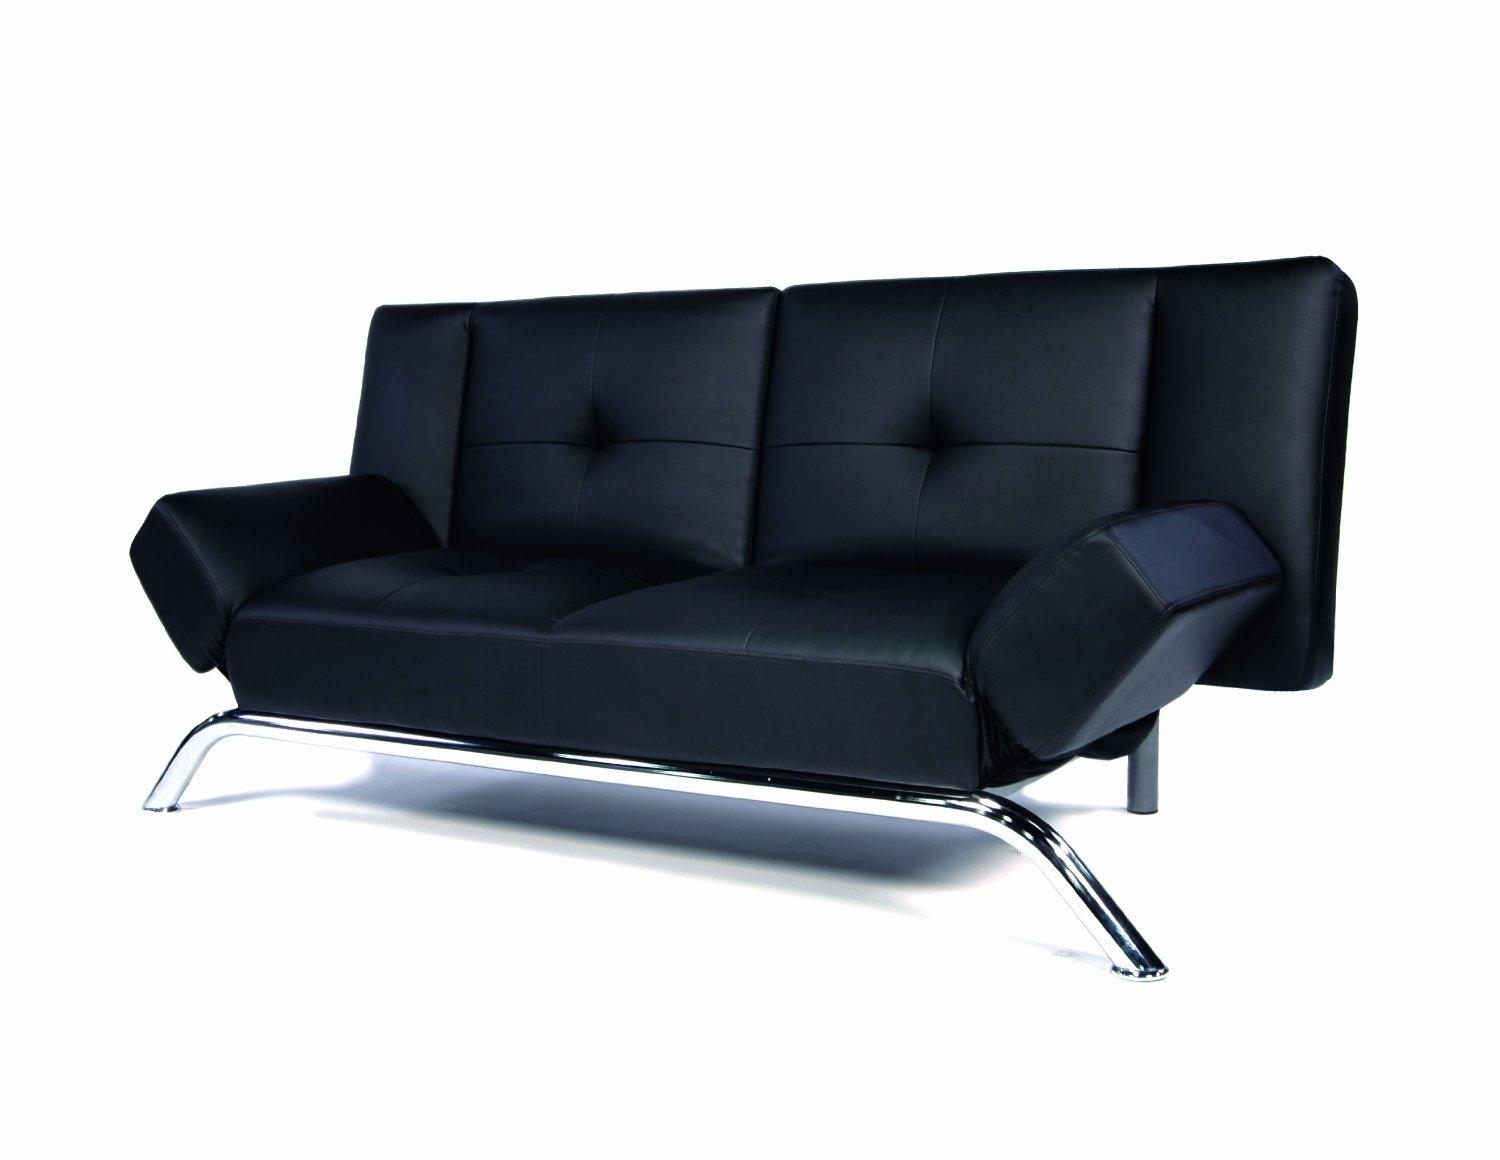 Leather Convertible Sofa With Black Leather Convertible Sofas (Image 15 of 20)